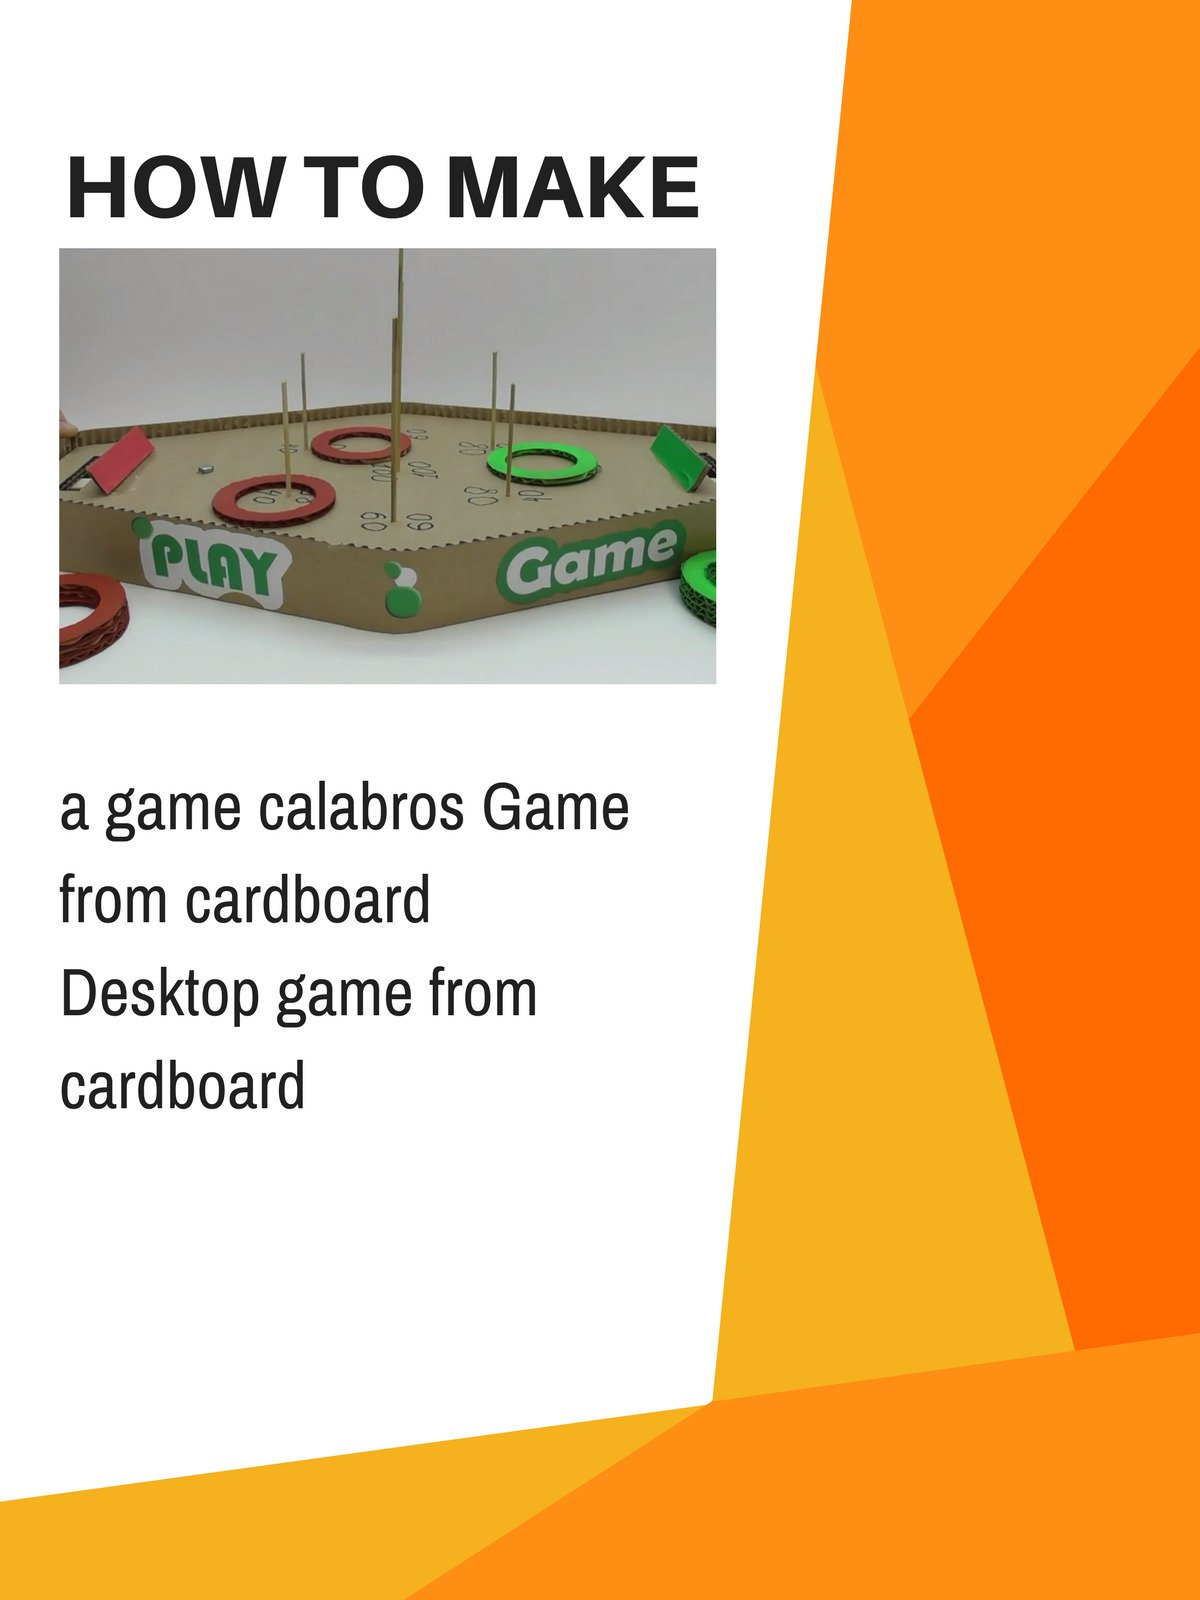 How to make a game calabros Game from cardboard Desktop game from cardboard